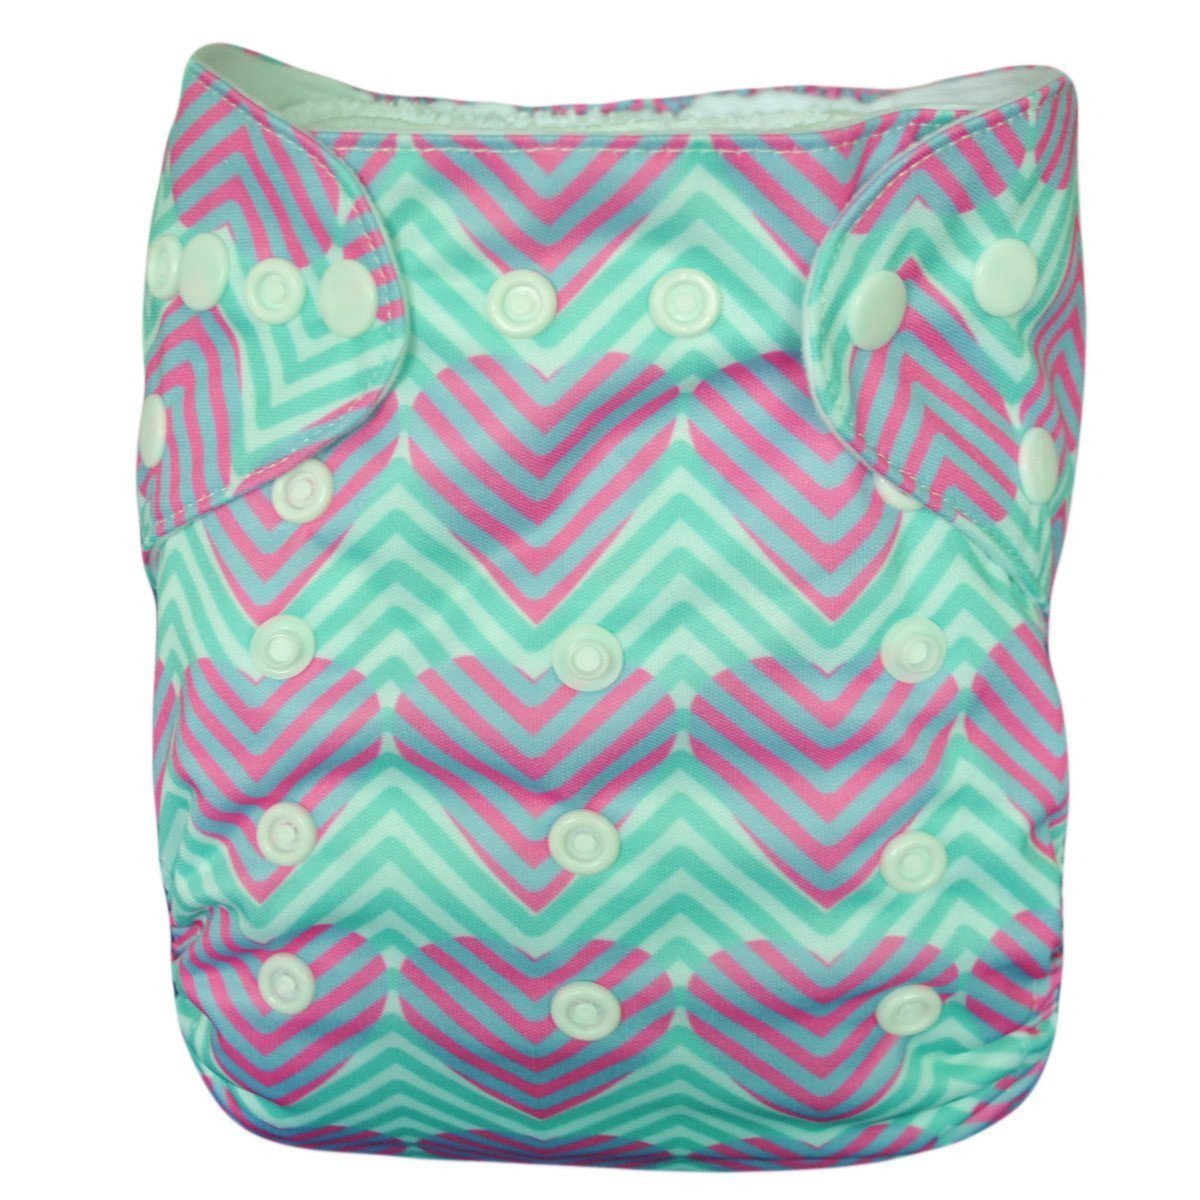 Express the Best Cloth Re-usable Nappy Pack - Zig Zag Hearts - Naked Baby Eco Boutique